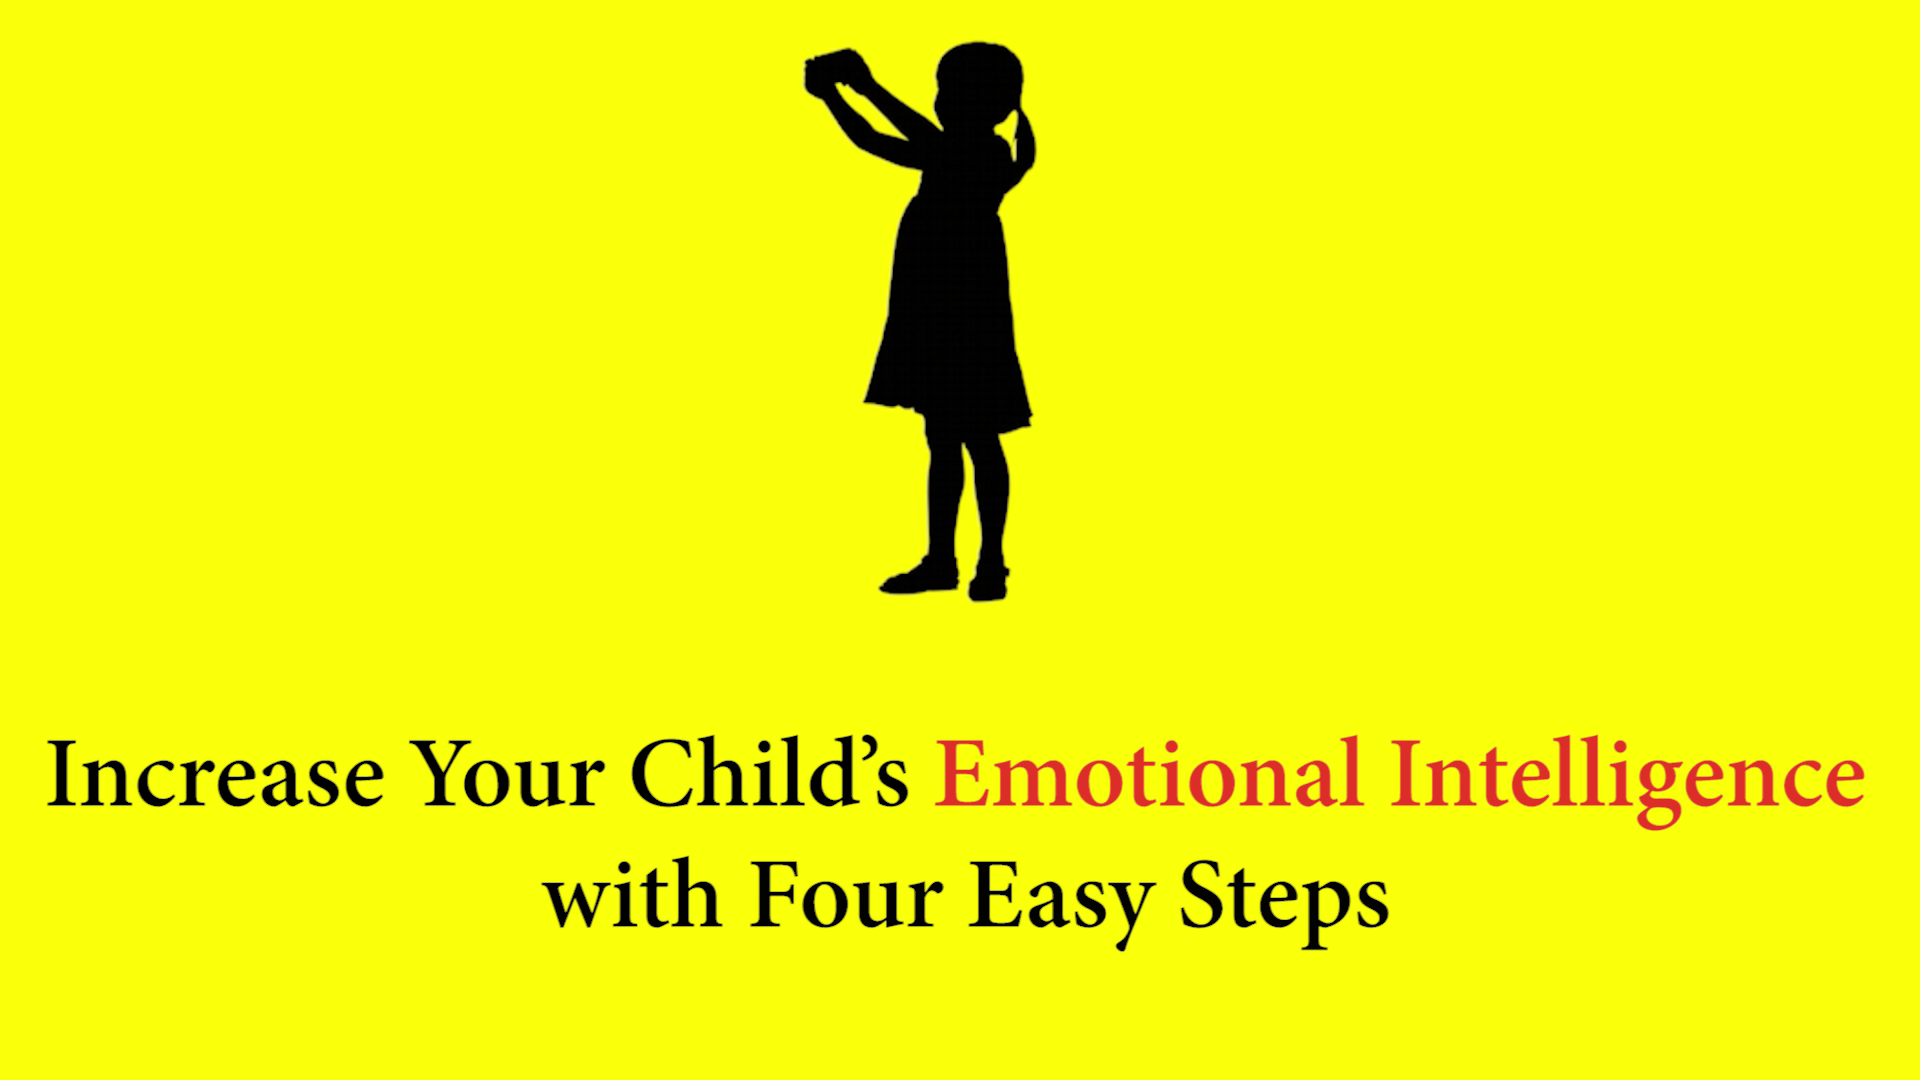 Increase Your Child's Emotional Intelligence with Four Easy Steps